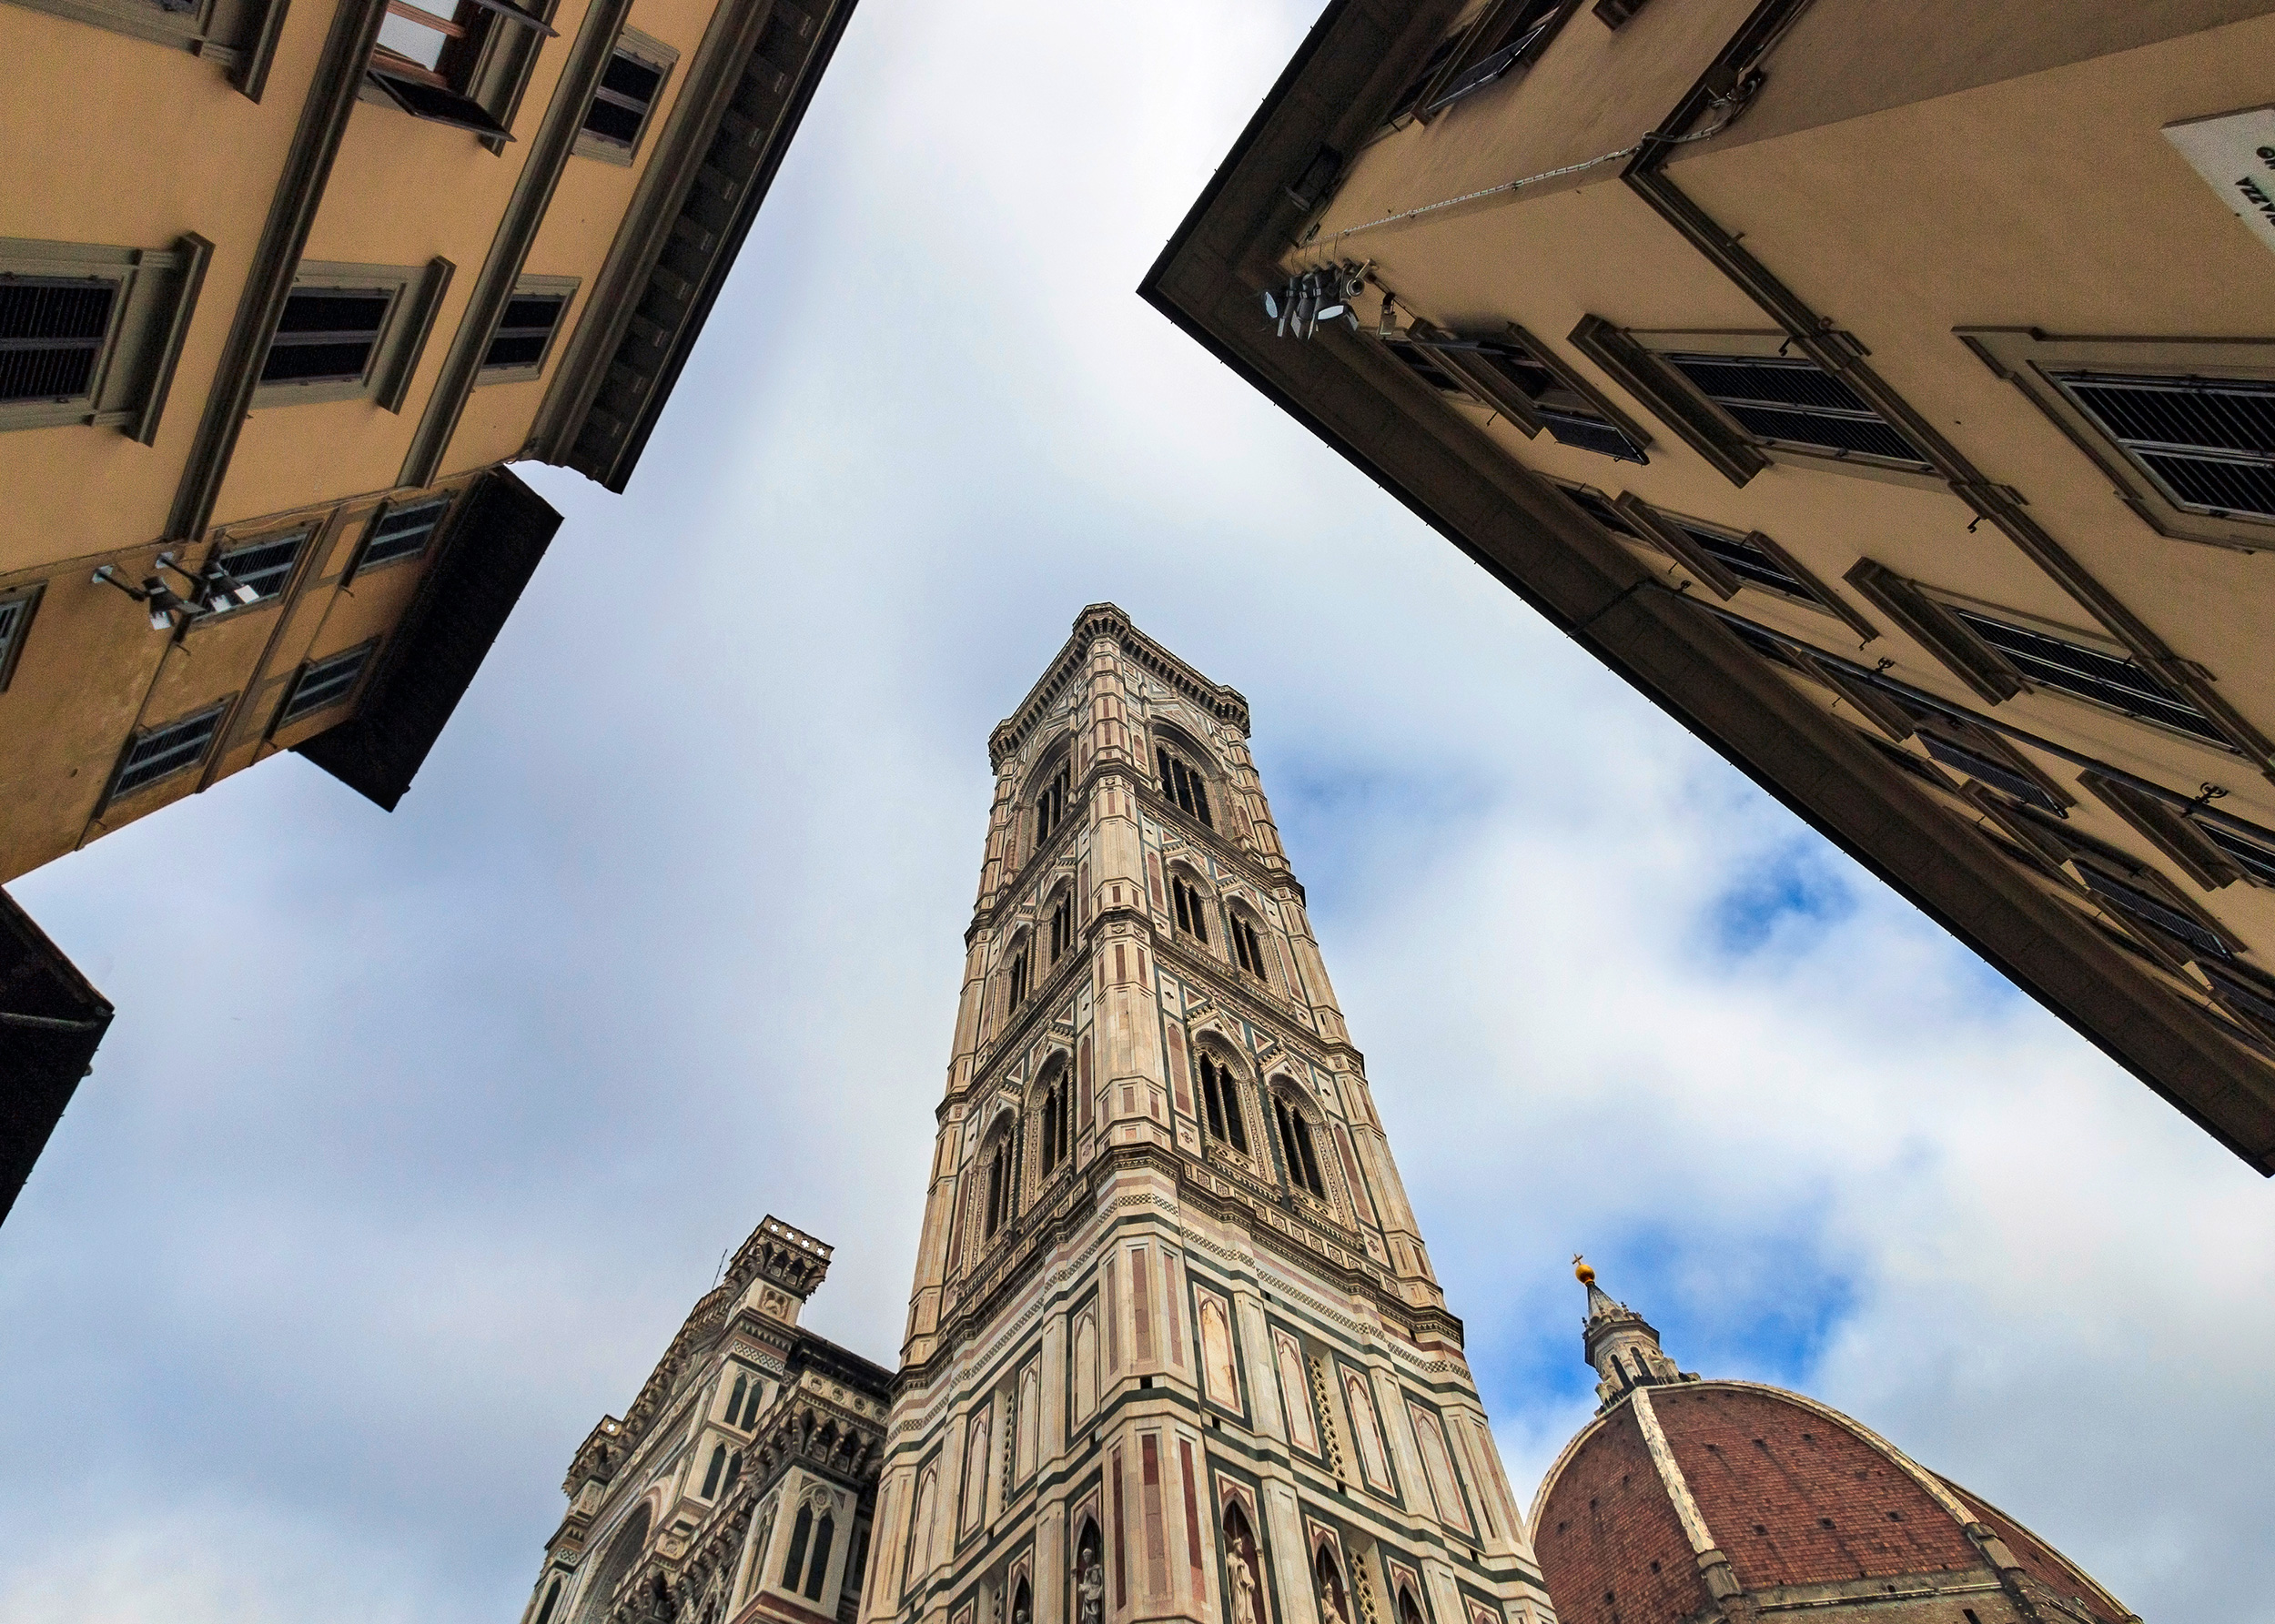 The Basilica of Santa Maria del Fiore in Florence, italy